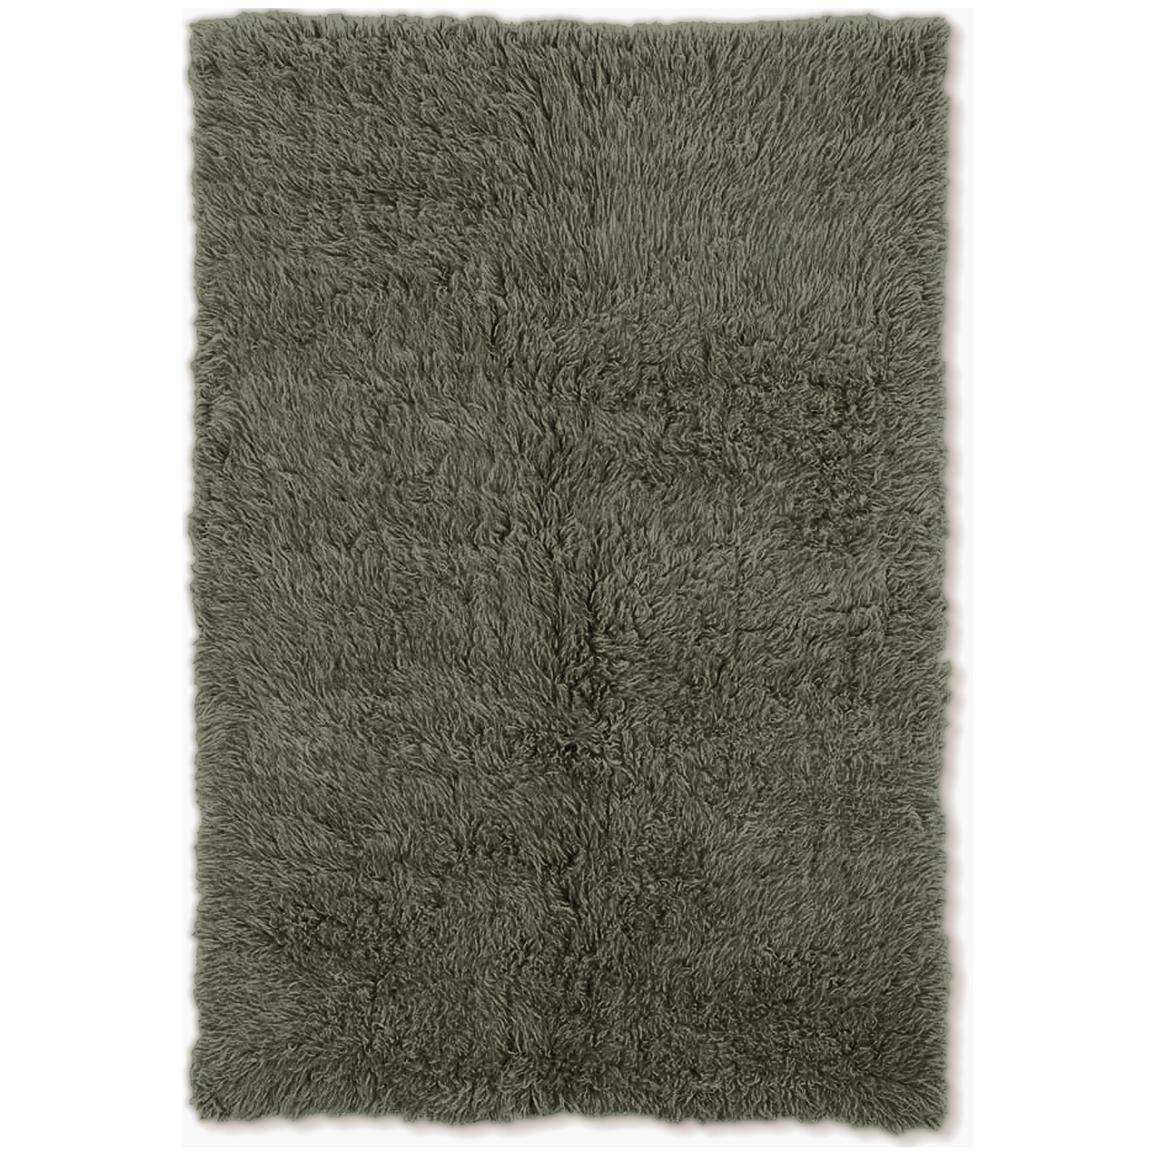 Linon Home Decor, Inc. Flokati Collection Rug, Olive